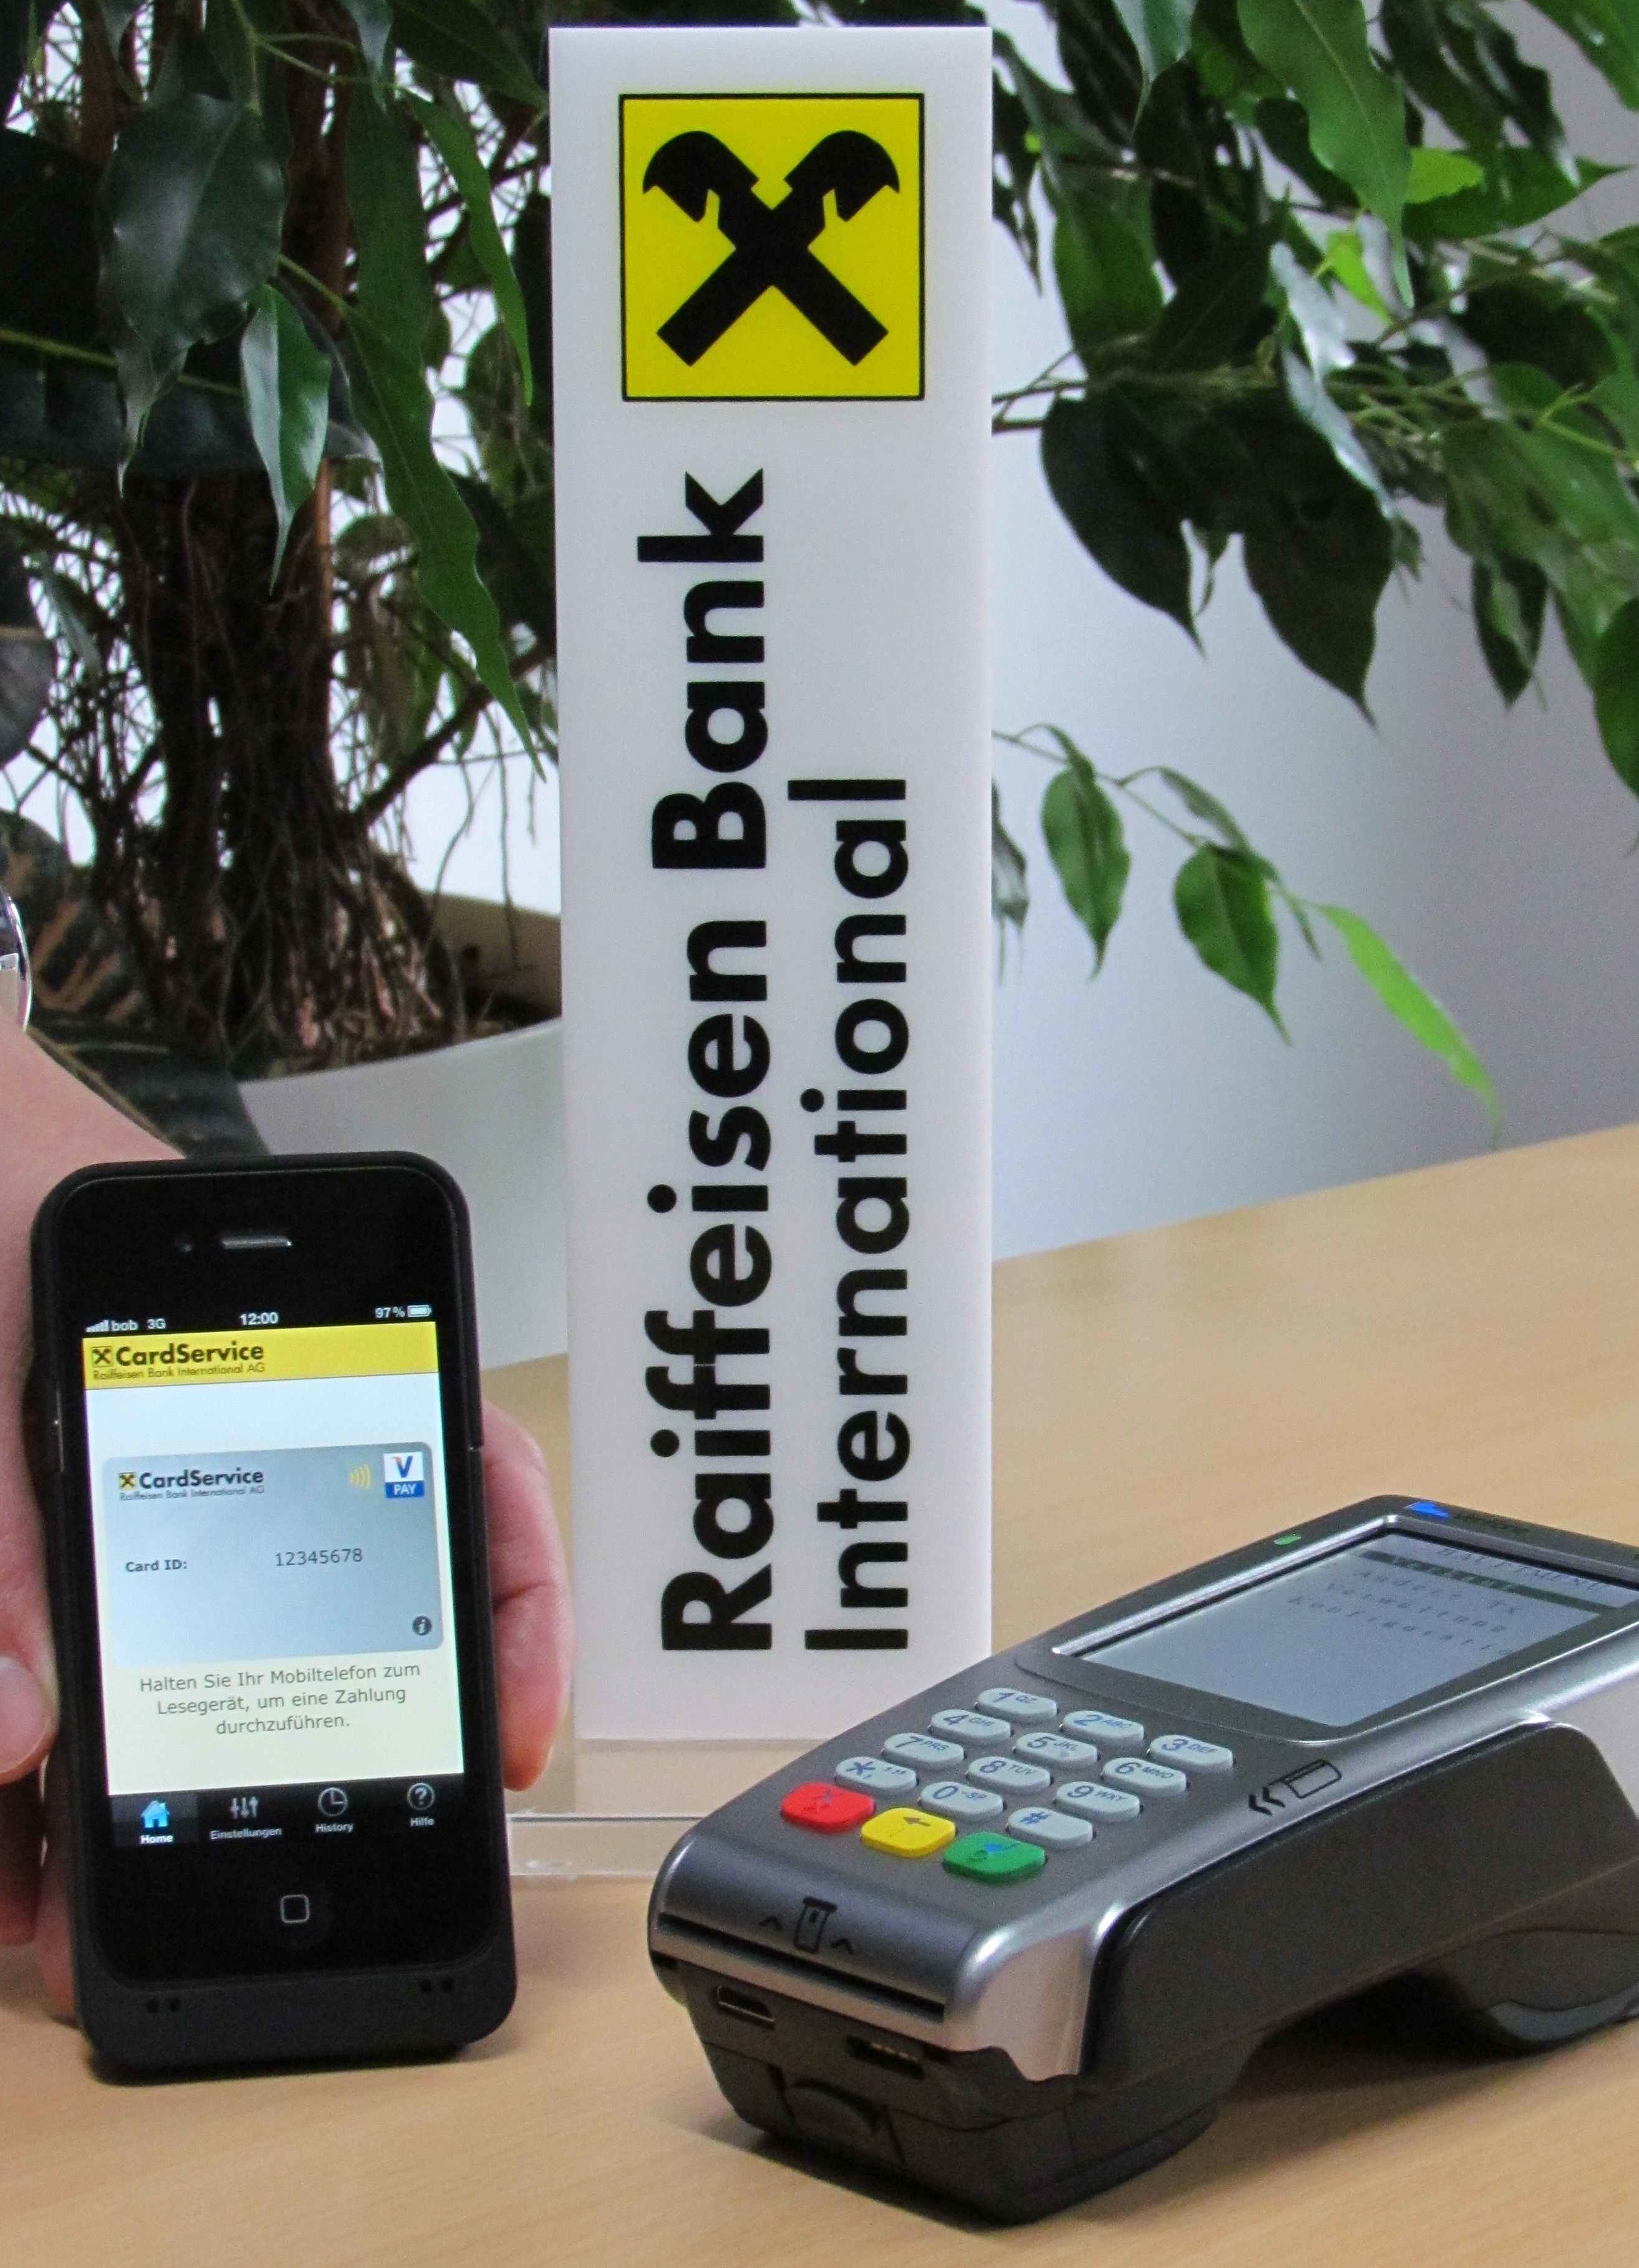 Austrian Bank to Launch Mobile-Payment Service with microSDs and iPhone